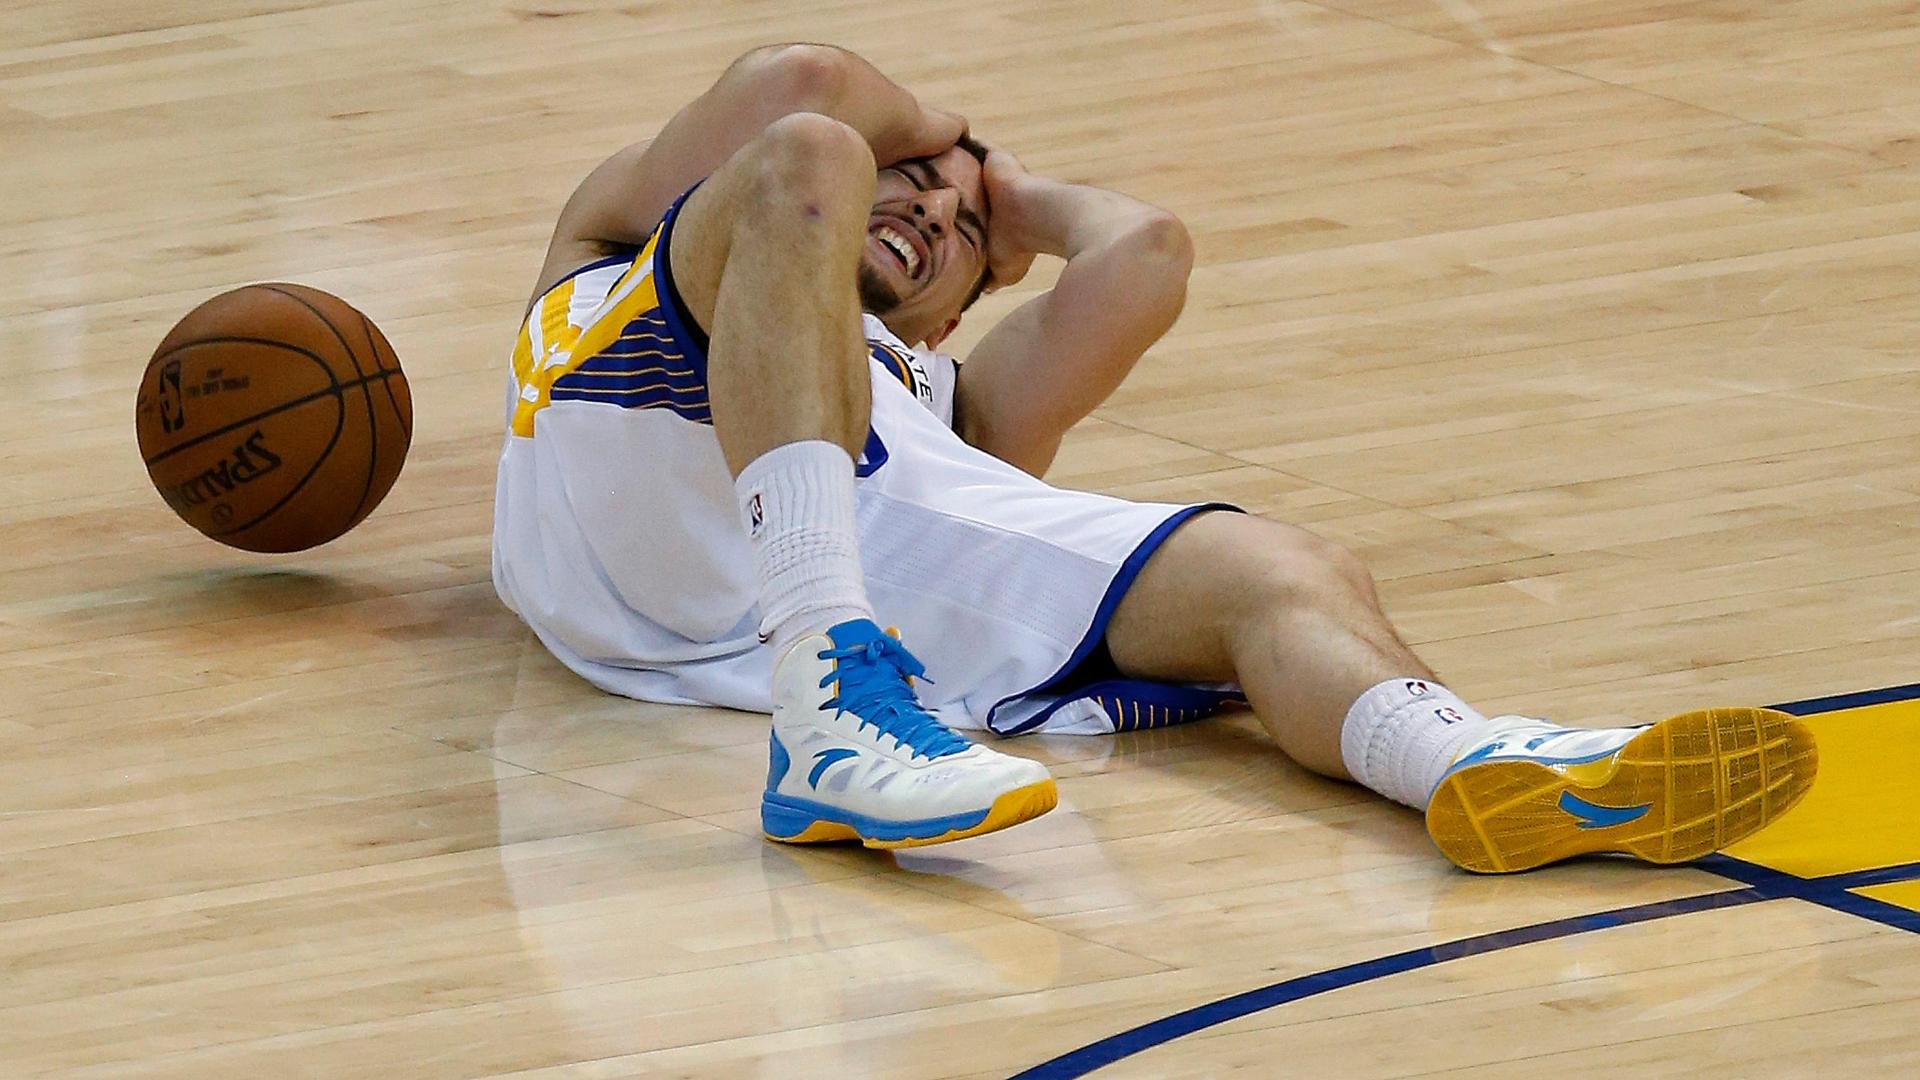 Klay Thompson developed concussion-like symptoms after game, team says